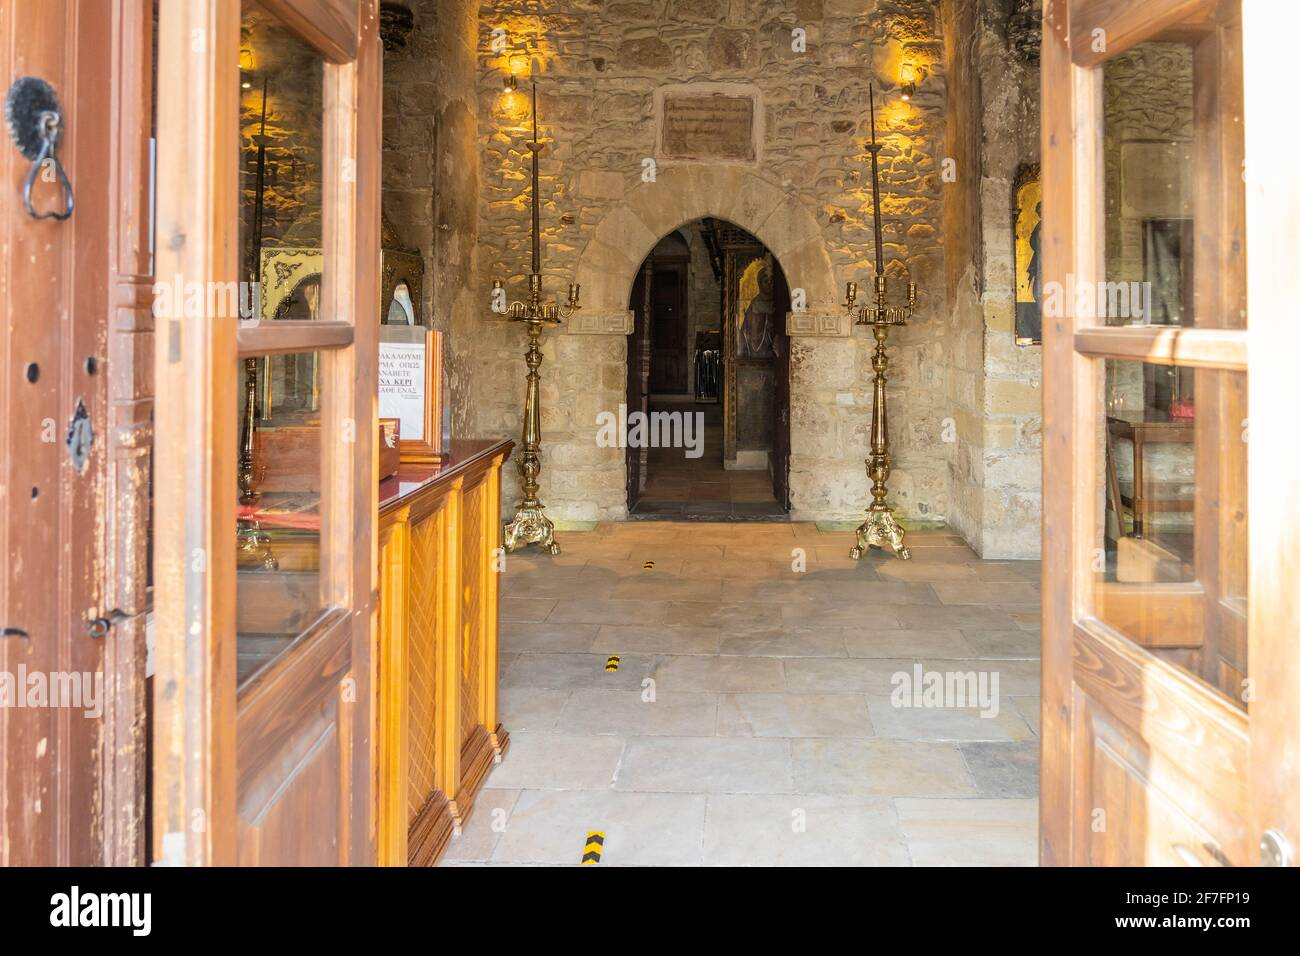 December 2020. Kiti, Larnaca Cyprus. Interior of Panagia Angeloktisti or Our Lady built by Angels, 11th Century, Kiti Stock Photo